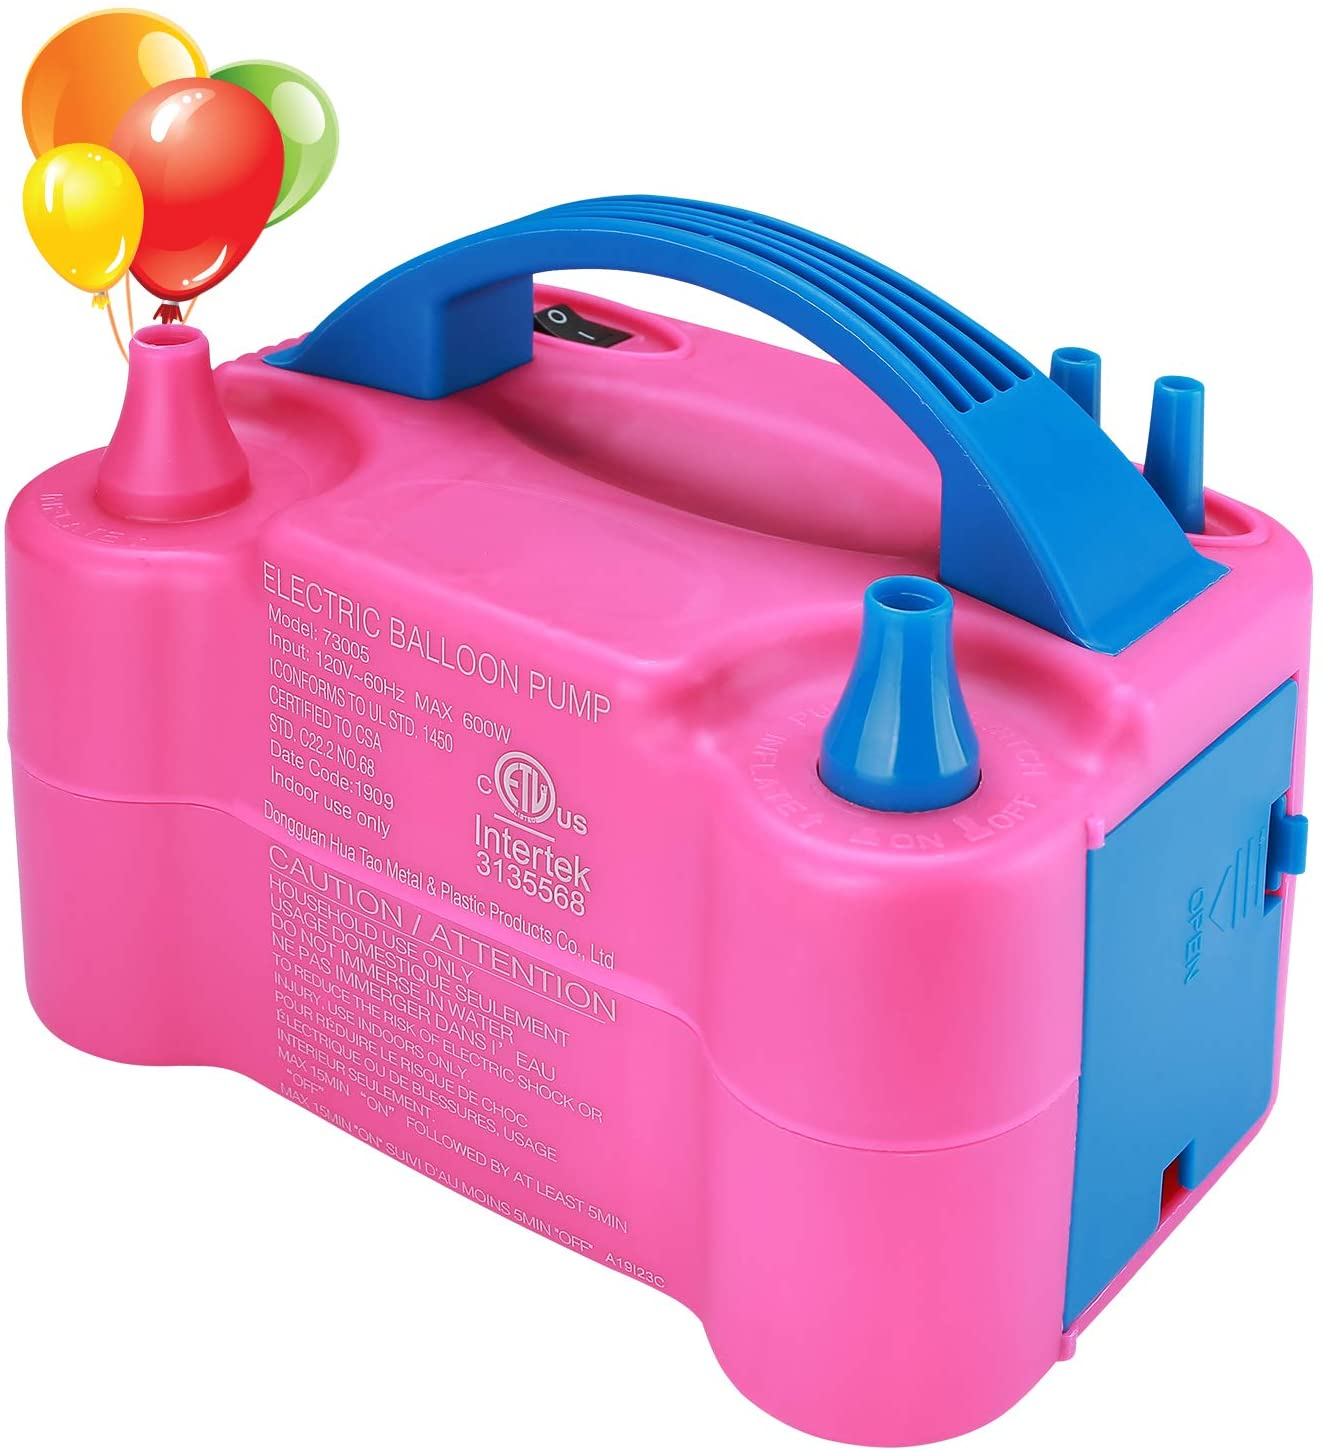 Electric Balloon Pump | Hautton